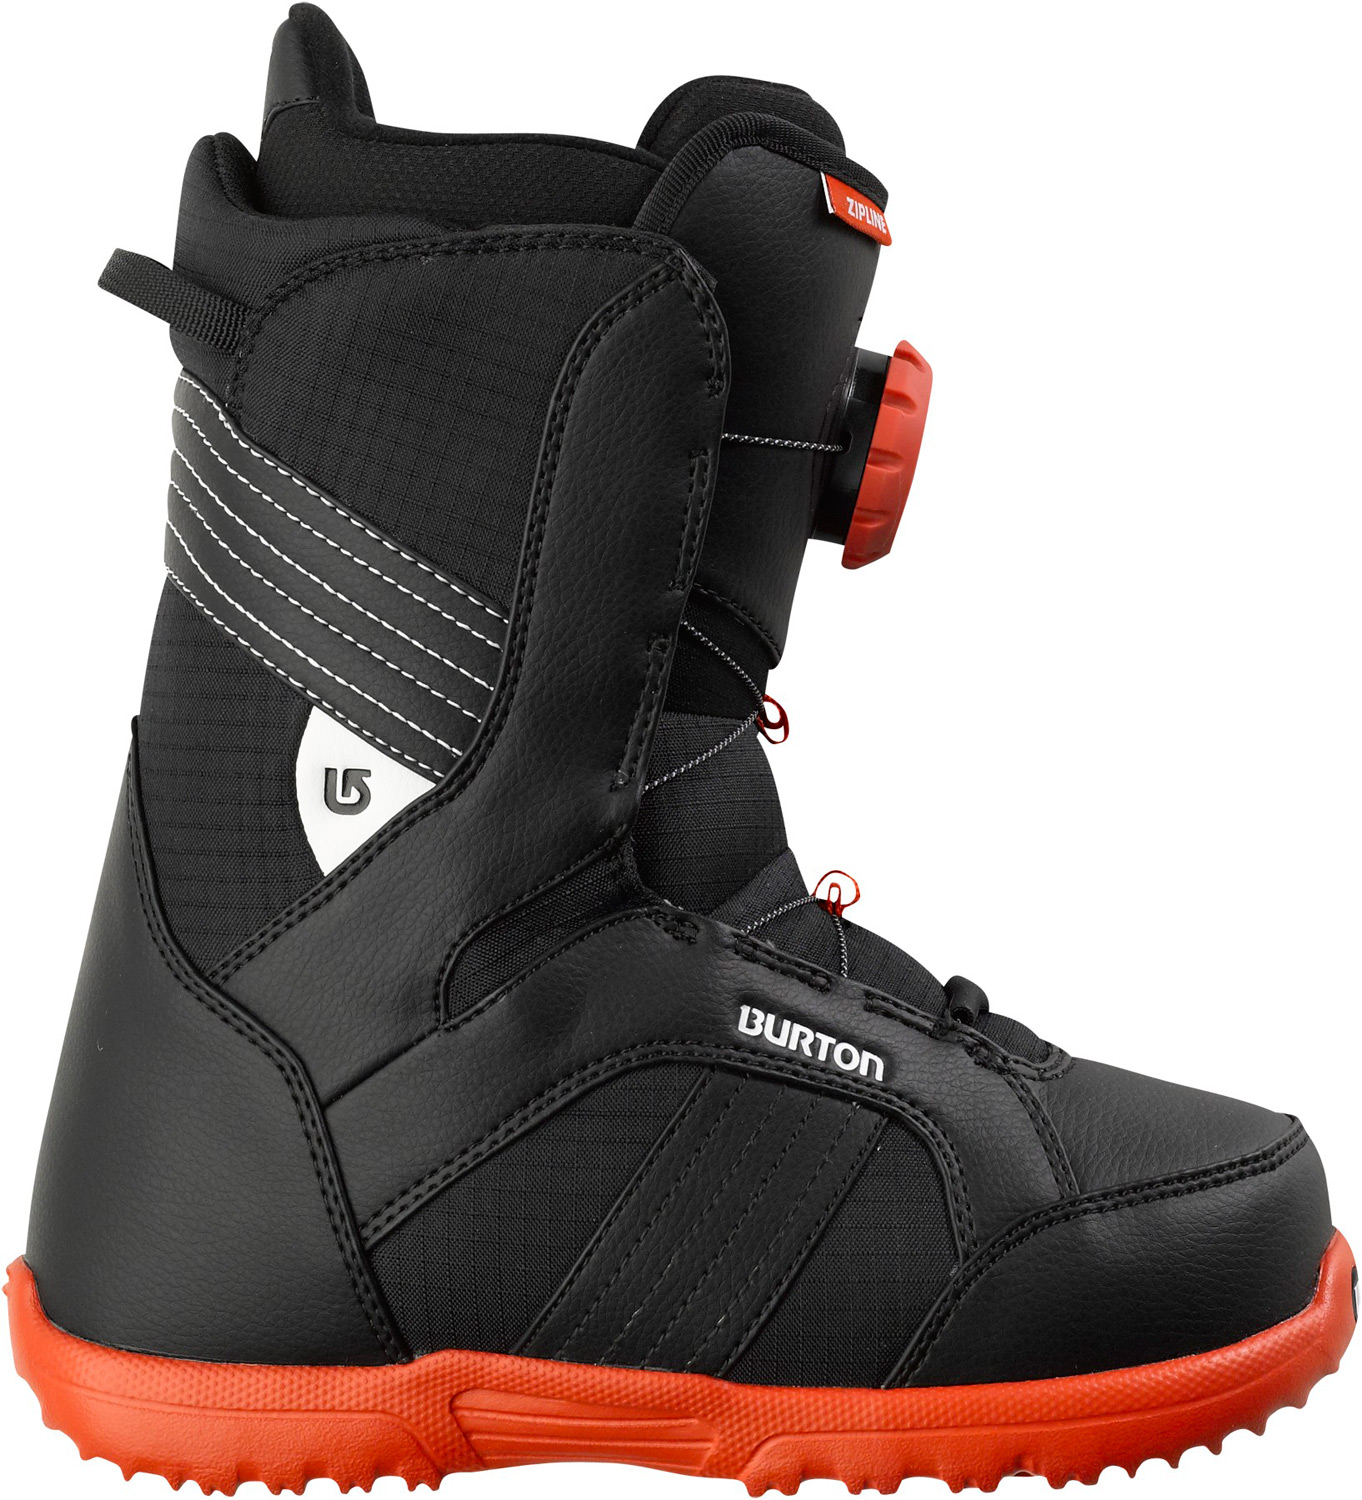 Snowboard Big kid tech and comfort, dialed in for junior. Key Features of the Burton Zipline Snowboard Boots: Support: 2 Lacing: NEW Speed Dial Lacing System Liner: Youth Imprint Liner Cushioning: DynoLite Outsole Comfort: Snow-Proof Internal Gusset and Level 1 Molded EVA Footbed - $83.95